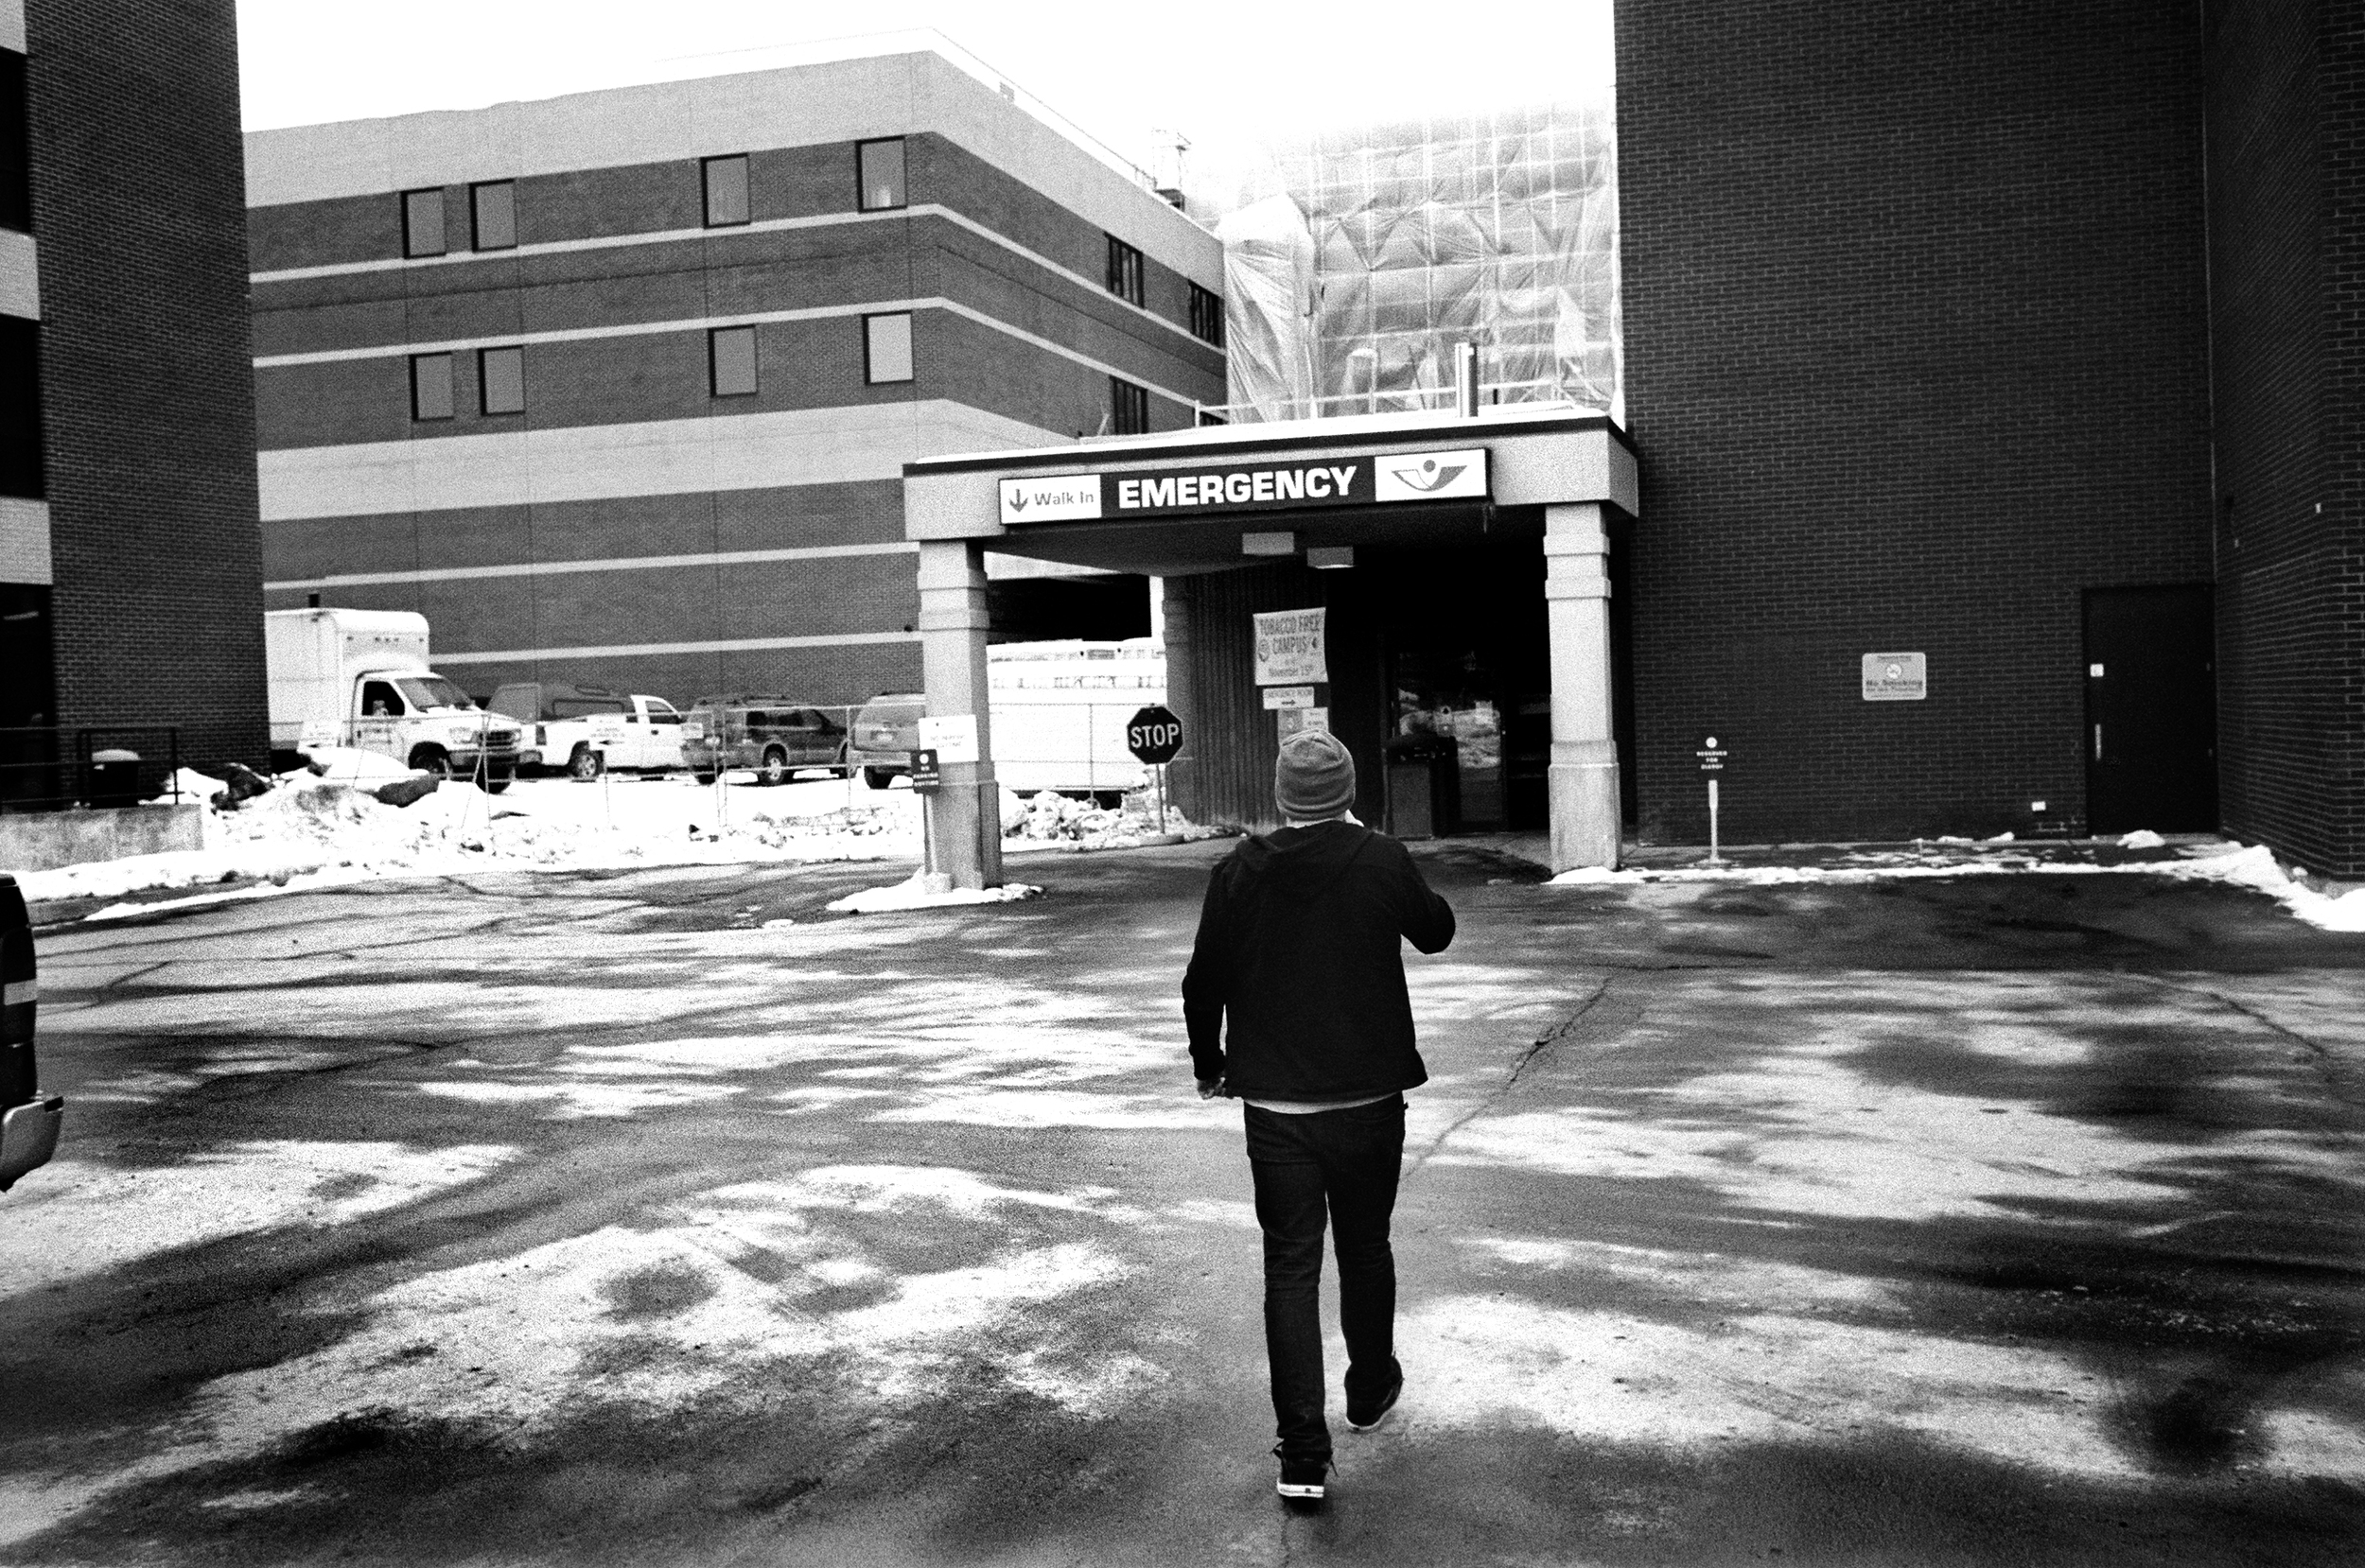 SPC Adam Ramsey checks himself into a hospital after seriously contemplating suicide in Watertown, New York, 2010. Ramsey was diagnosed with PTSD and schizoaffective disorder at a military hospital in Afghanistan, but was sent back to his combat post to continue his deployment. Back at his combat post he overdosed on prescription pills and was revived by a medic.